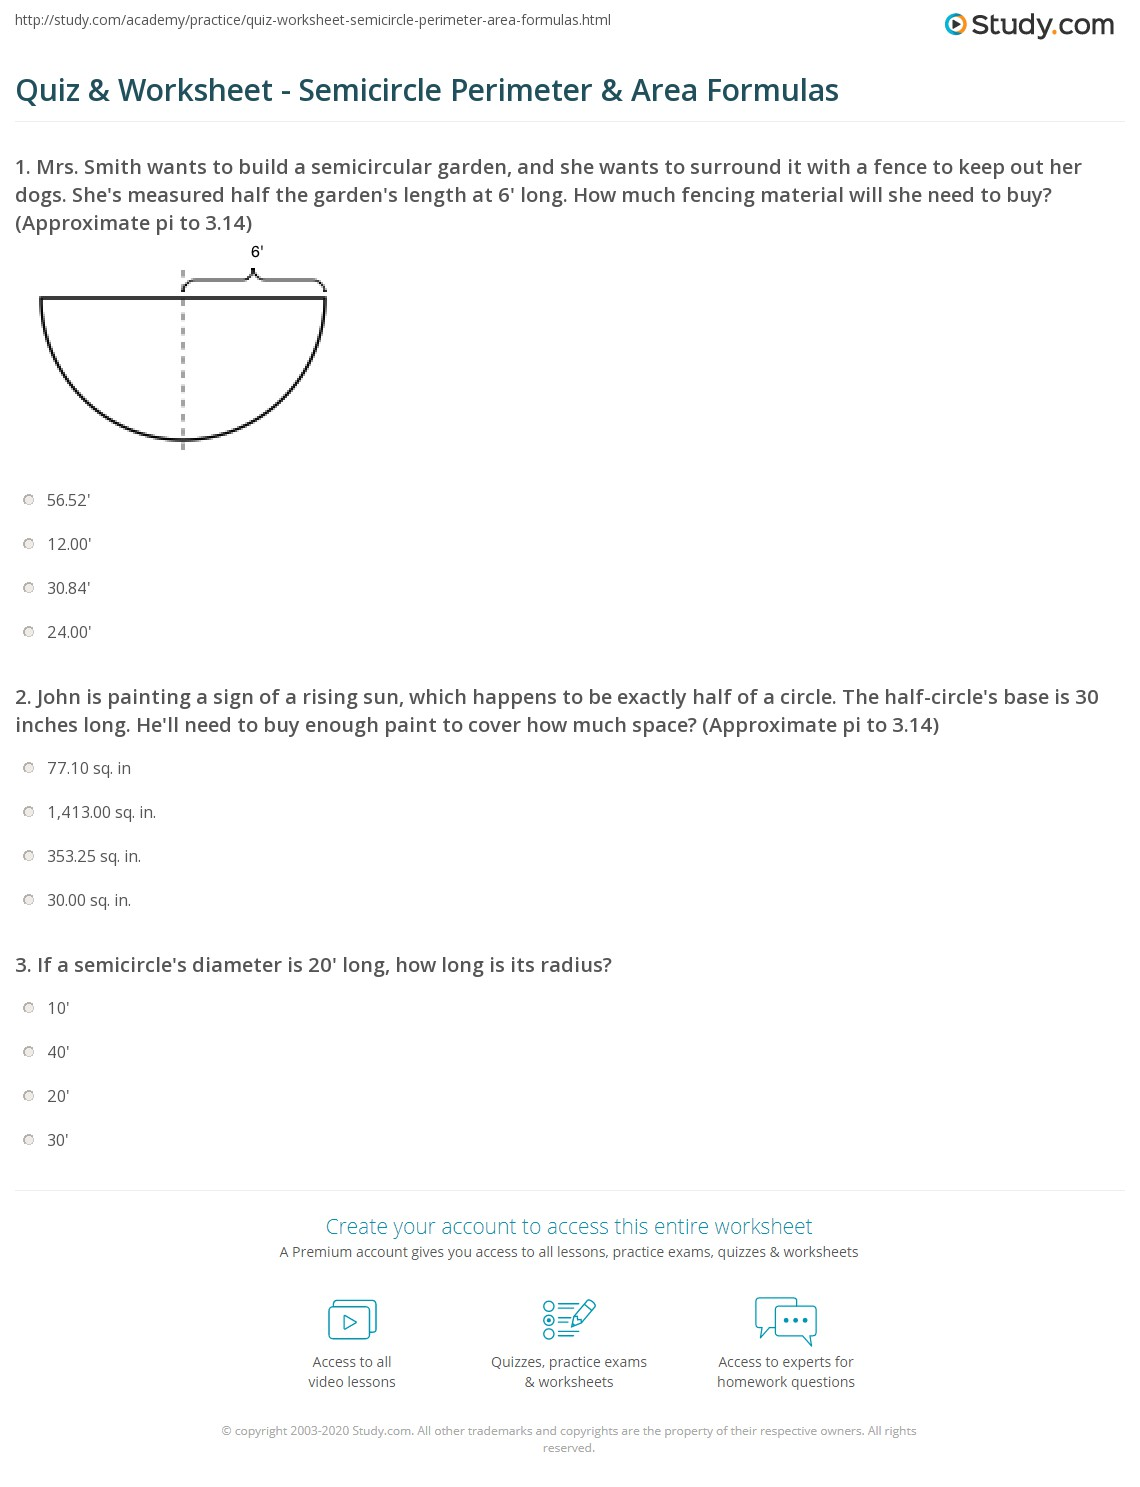 Worksheets Circumference And Area Of A Circle Worksheet quiz worksheet semicircle perimeter area formulas study com john is painting a sign of rising sun which happens to be exactly half circle the circles base 30 inches long